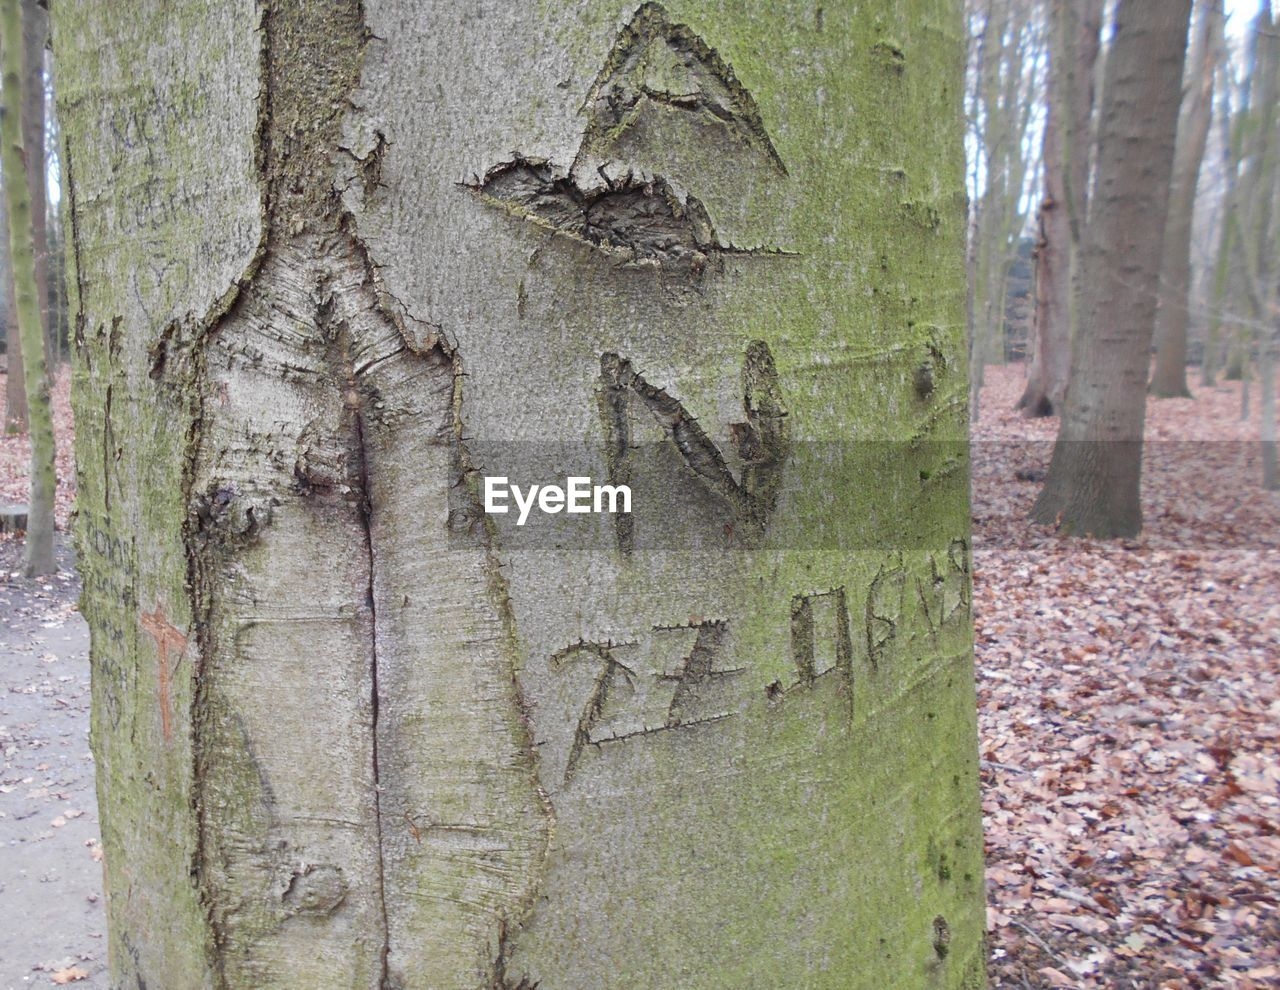 tree trunk, tree, day, no people, outdoors, close-up, wood - material, textured, nature, growth